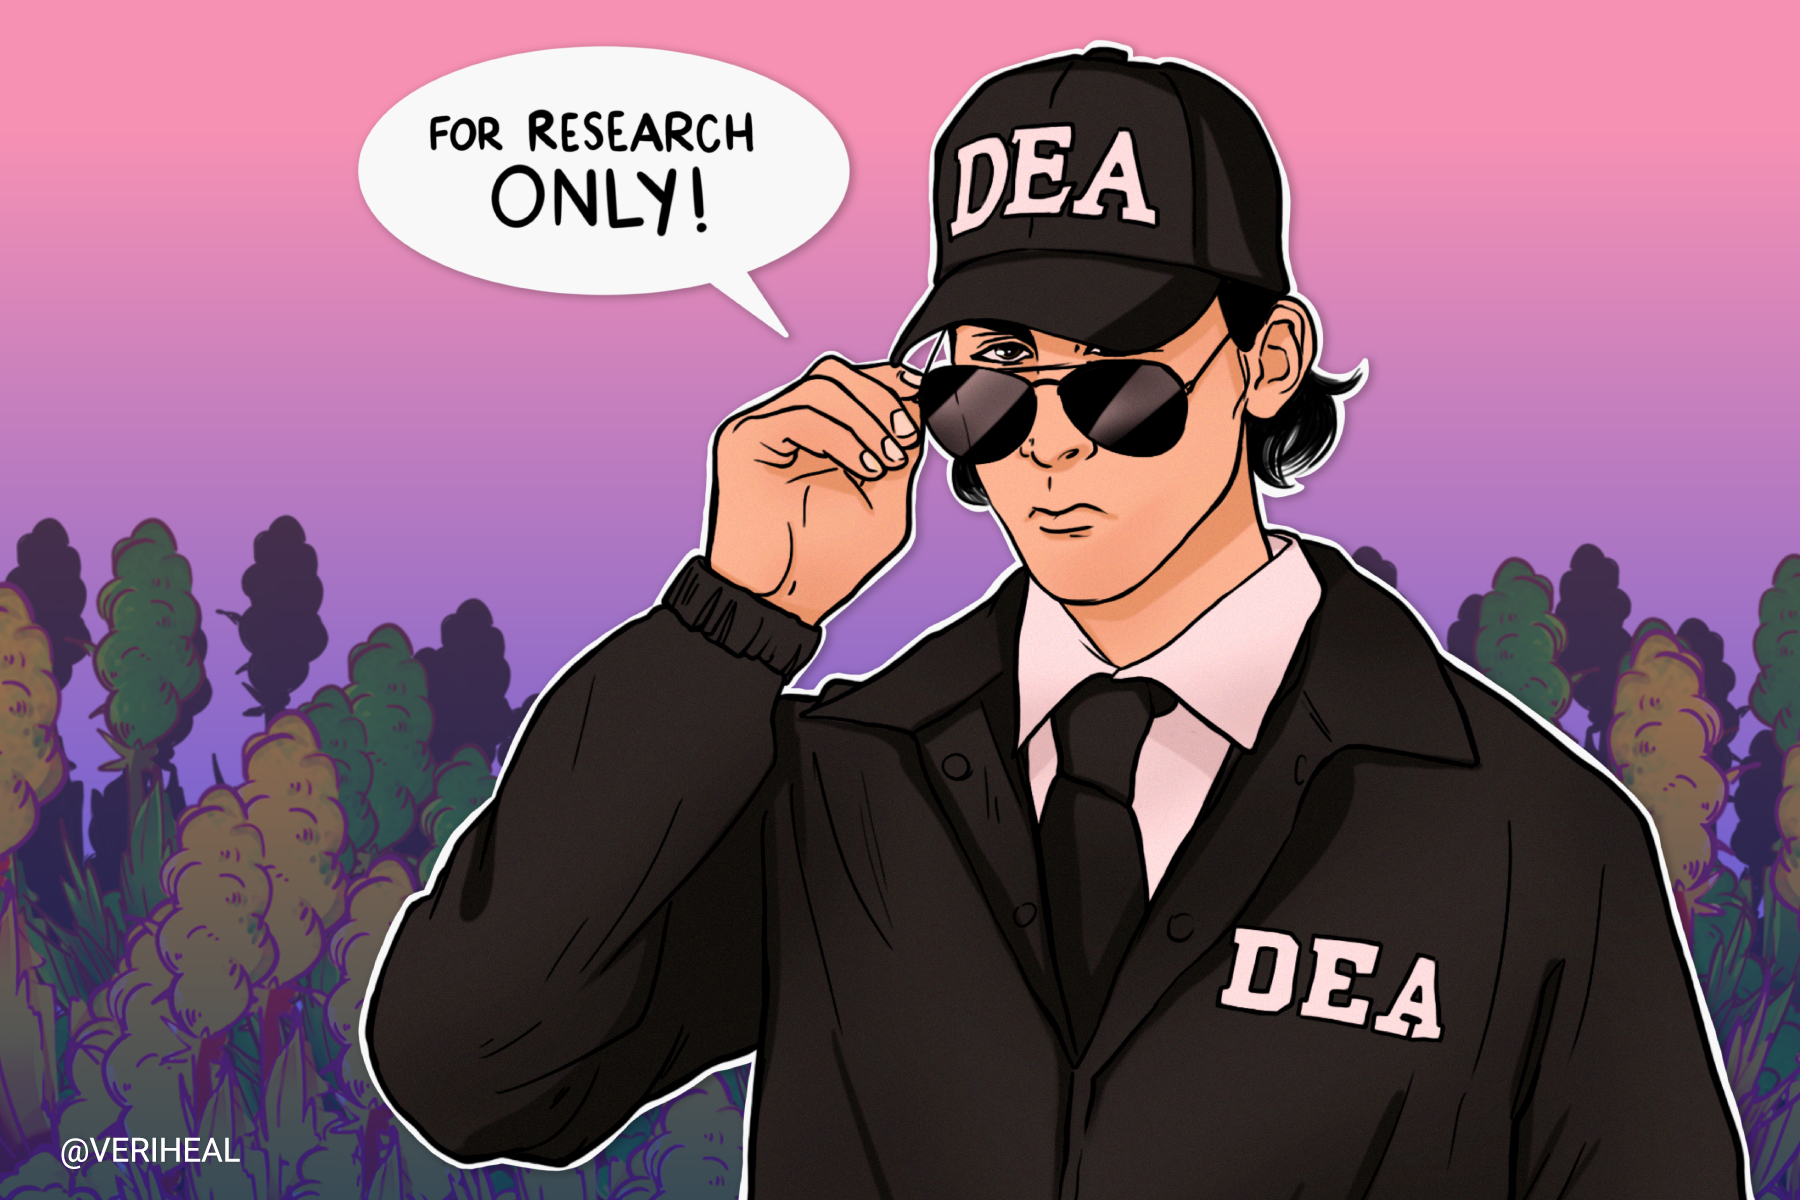 DEA Increases Access to Cannabis for Research Purposes